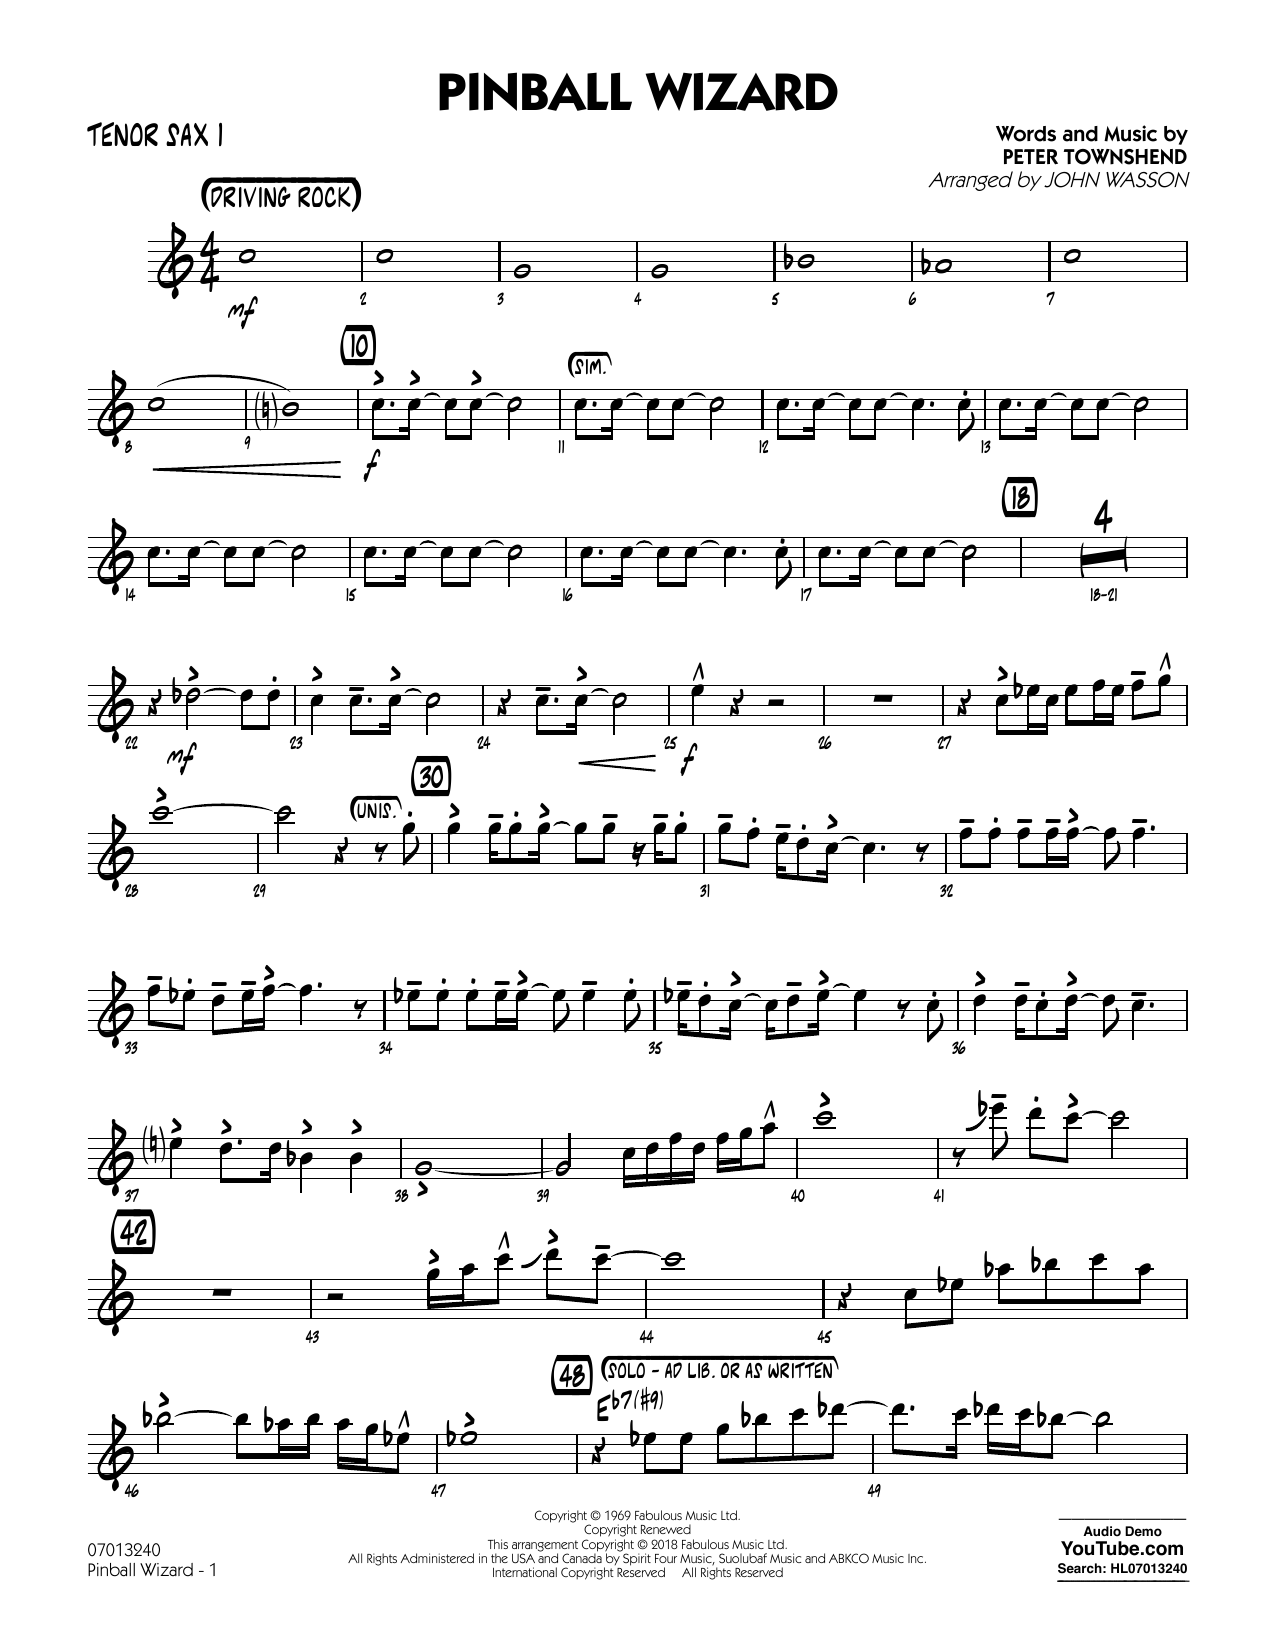 The Who Pinball Wizard (Arr. John Wasson) - Tenor Sax 1 sheet music notes and chords. Download Printable PDF.